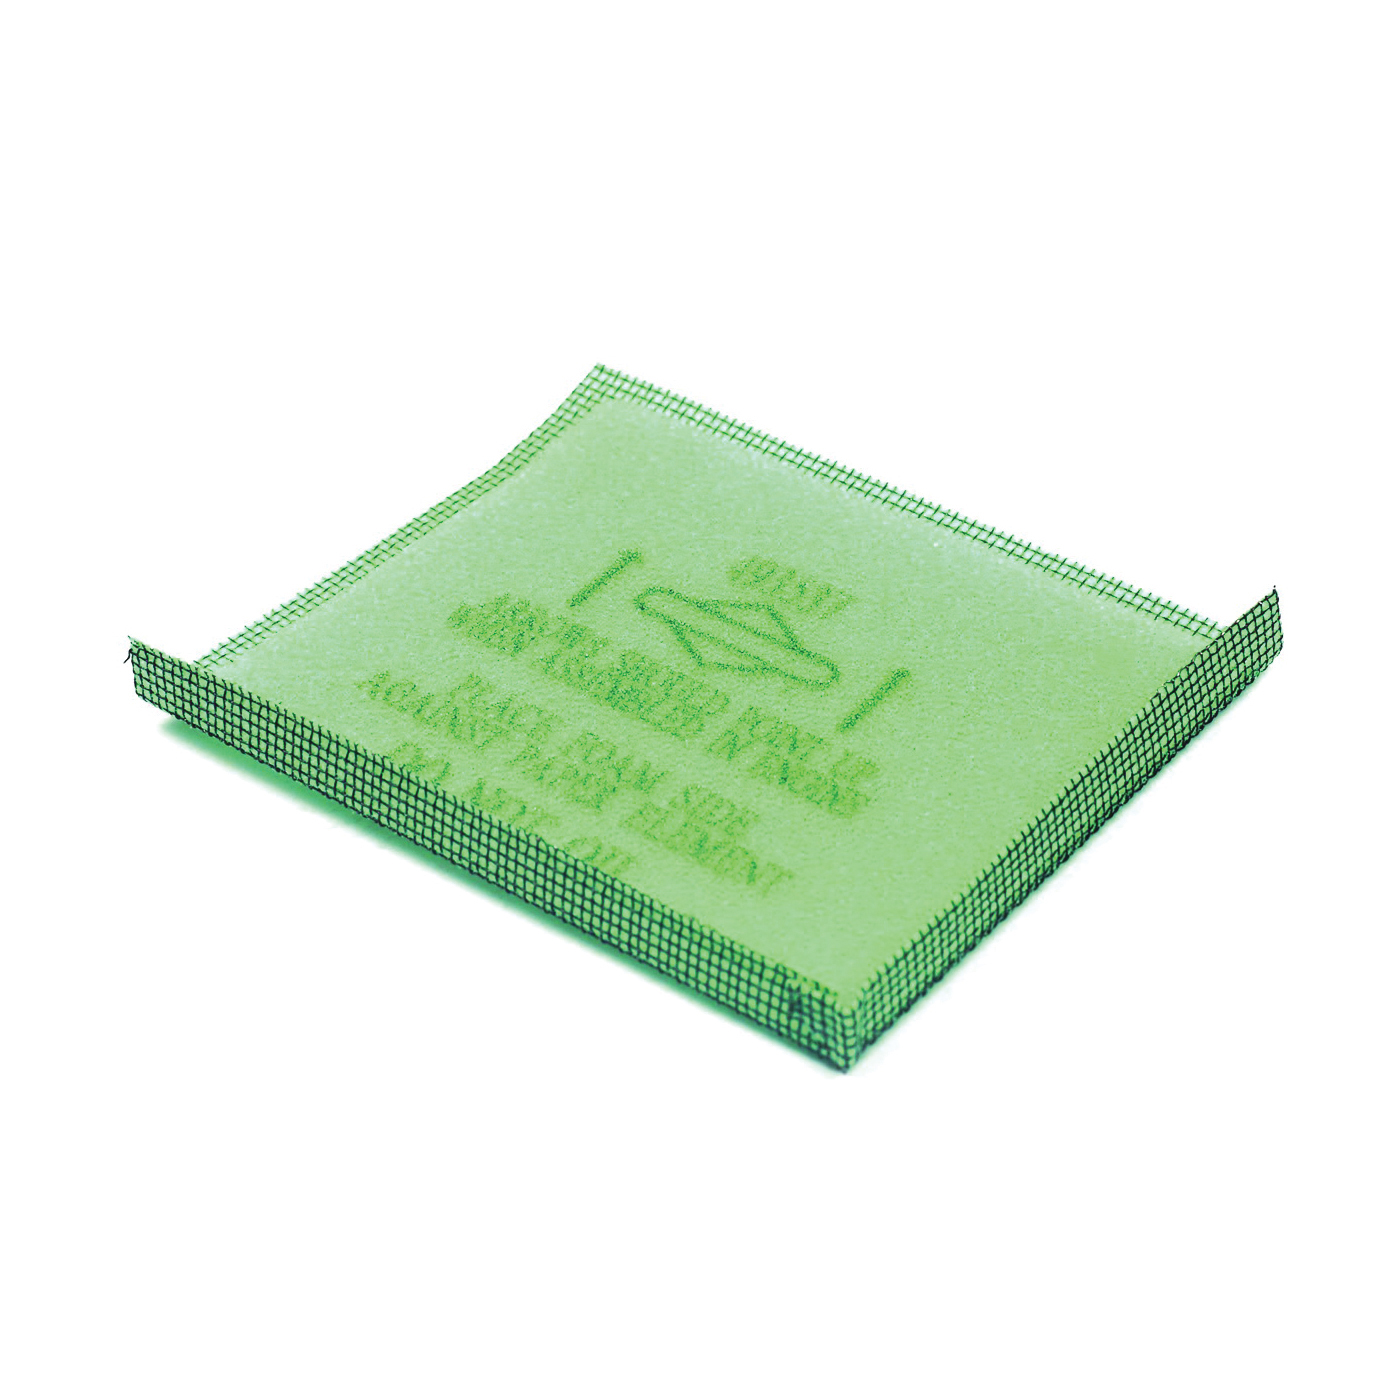 Picture of BRIGGS & STRATTON 5064K Air Filter, For: 3.5 - 6.75 hp Quantum Engines, 625 - 1575 Series Engines